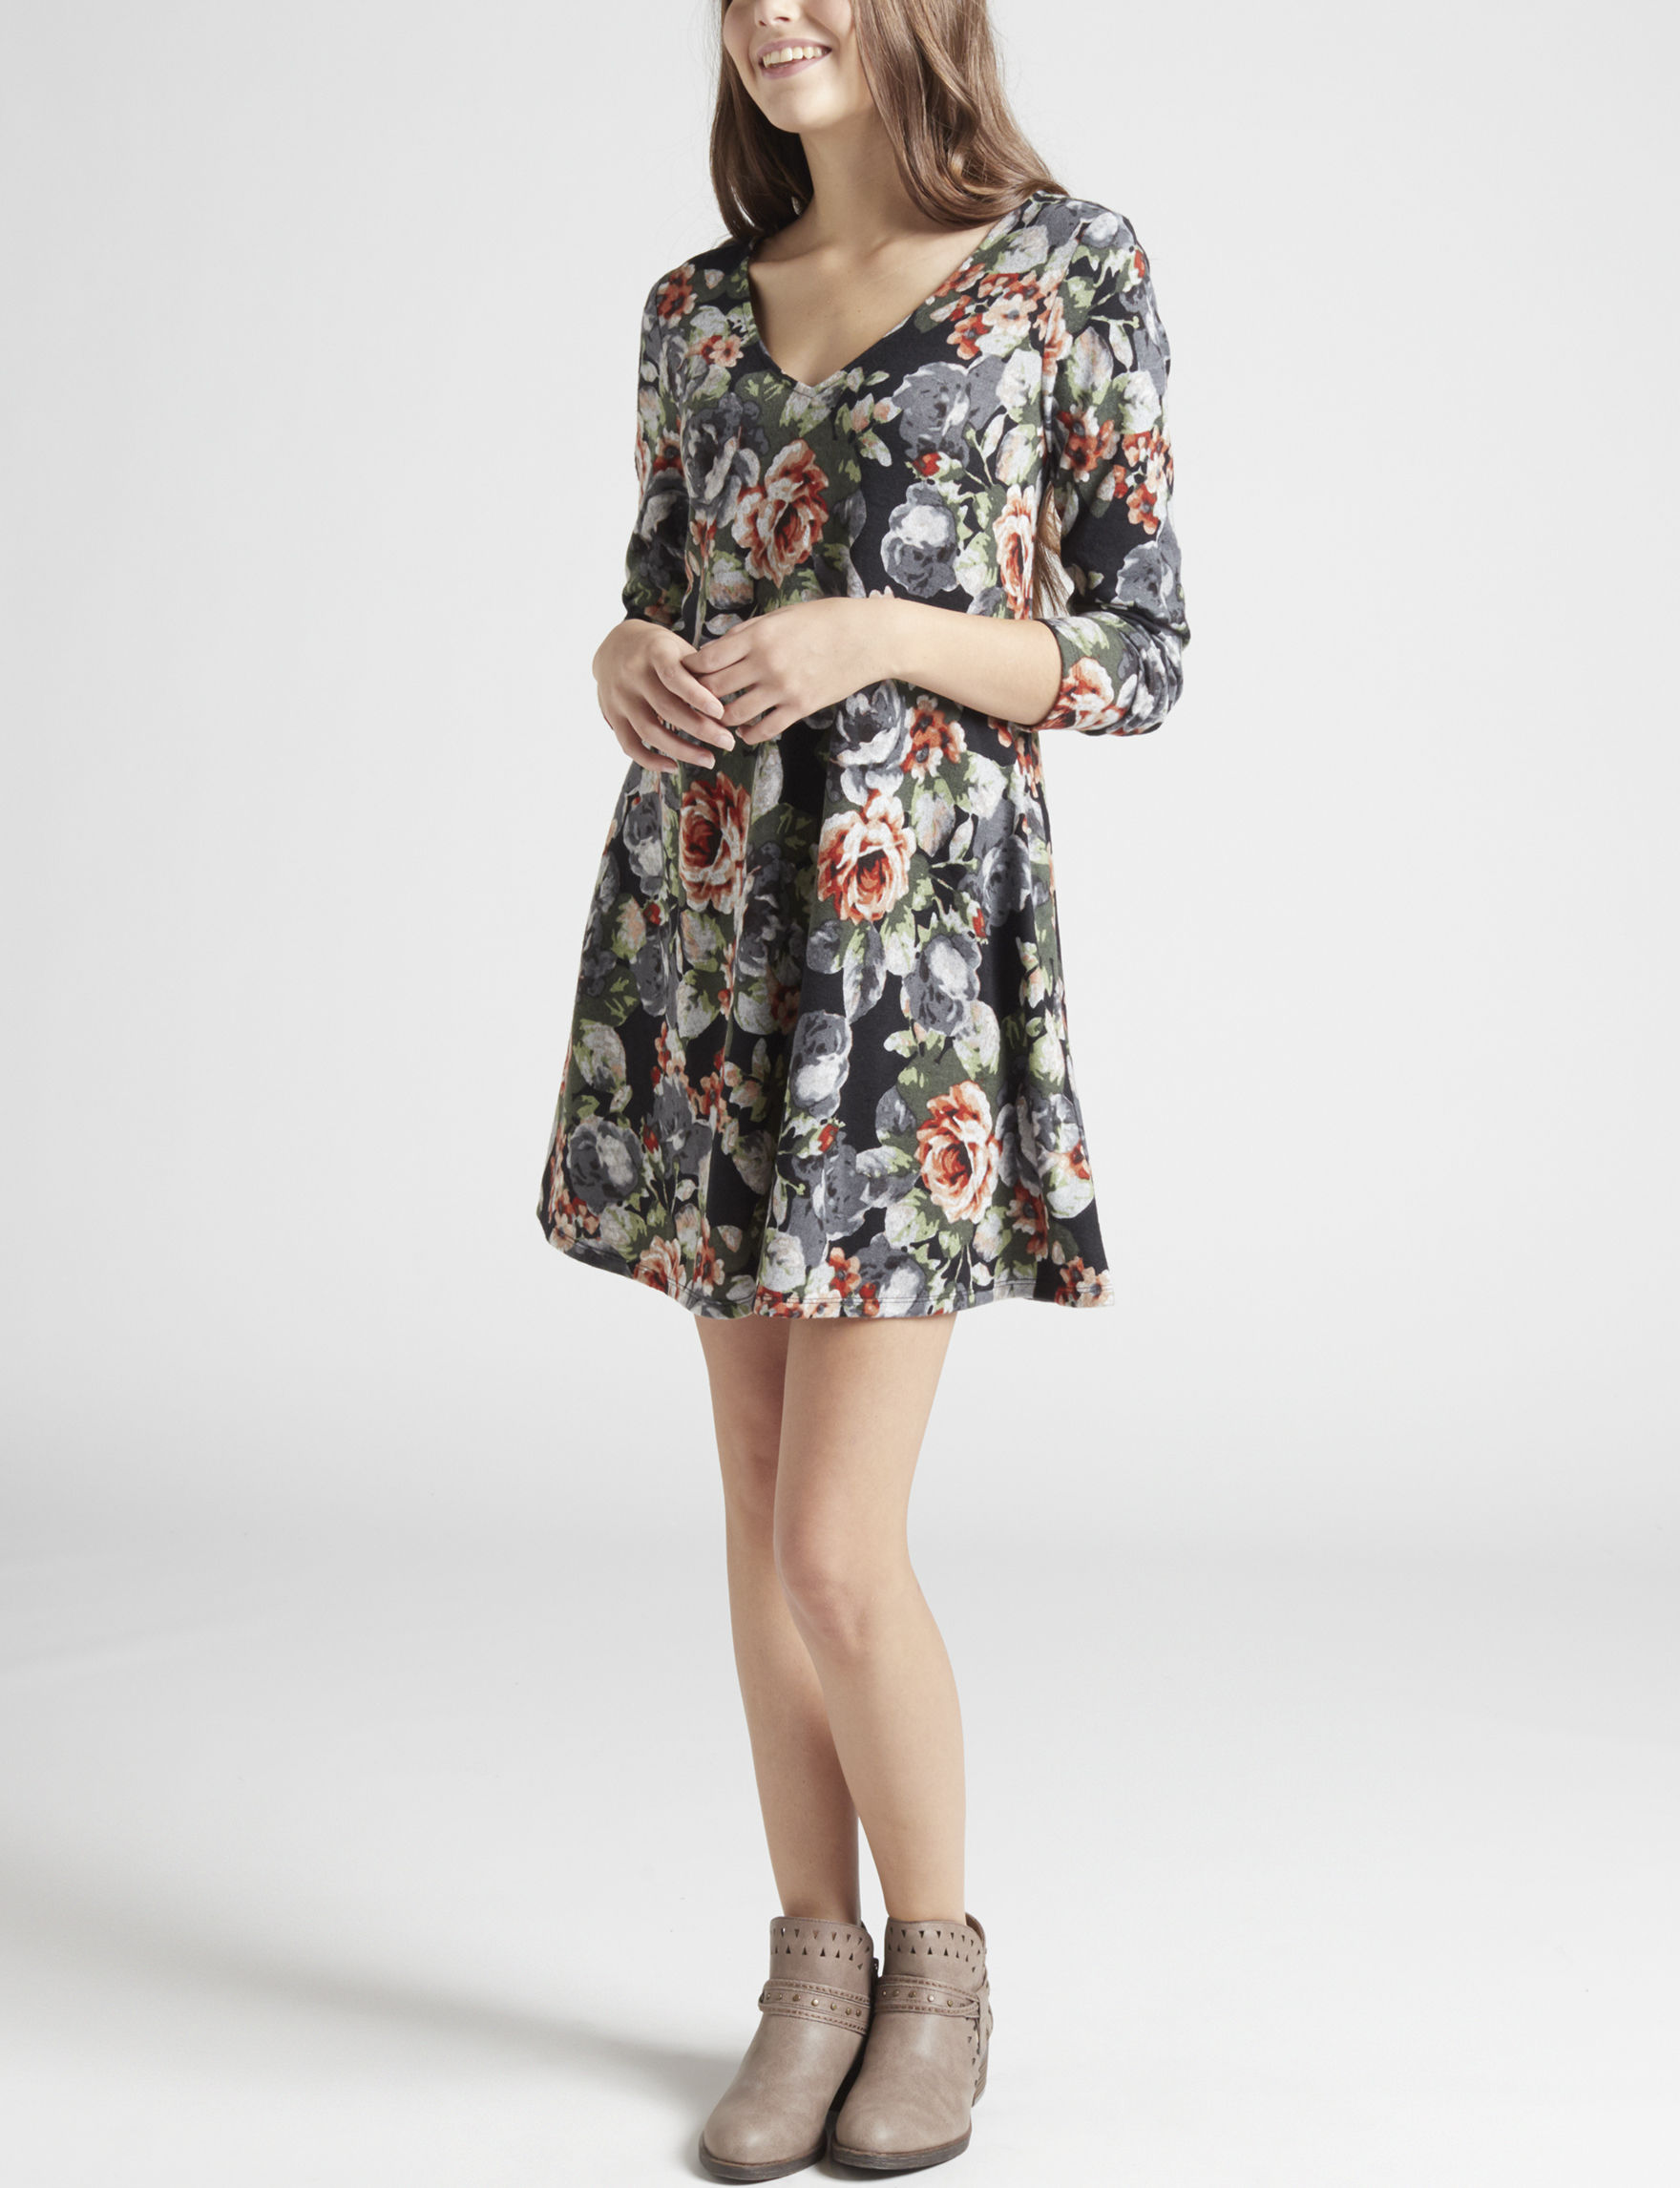 A. Byer Black Floral Everyday & Casual Sweater Dresses